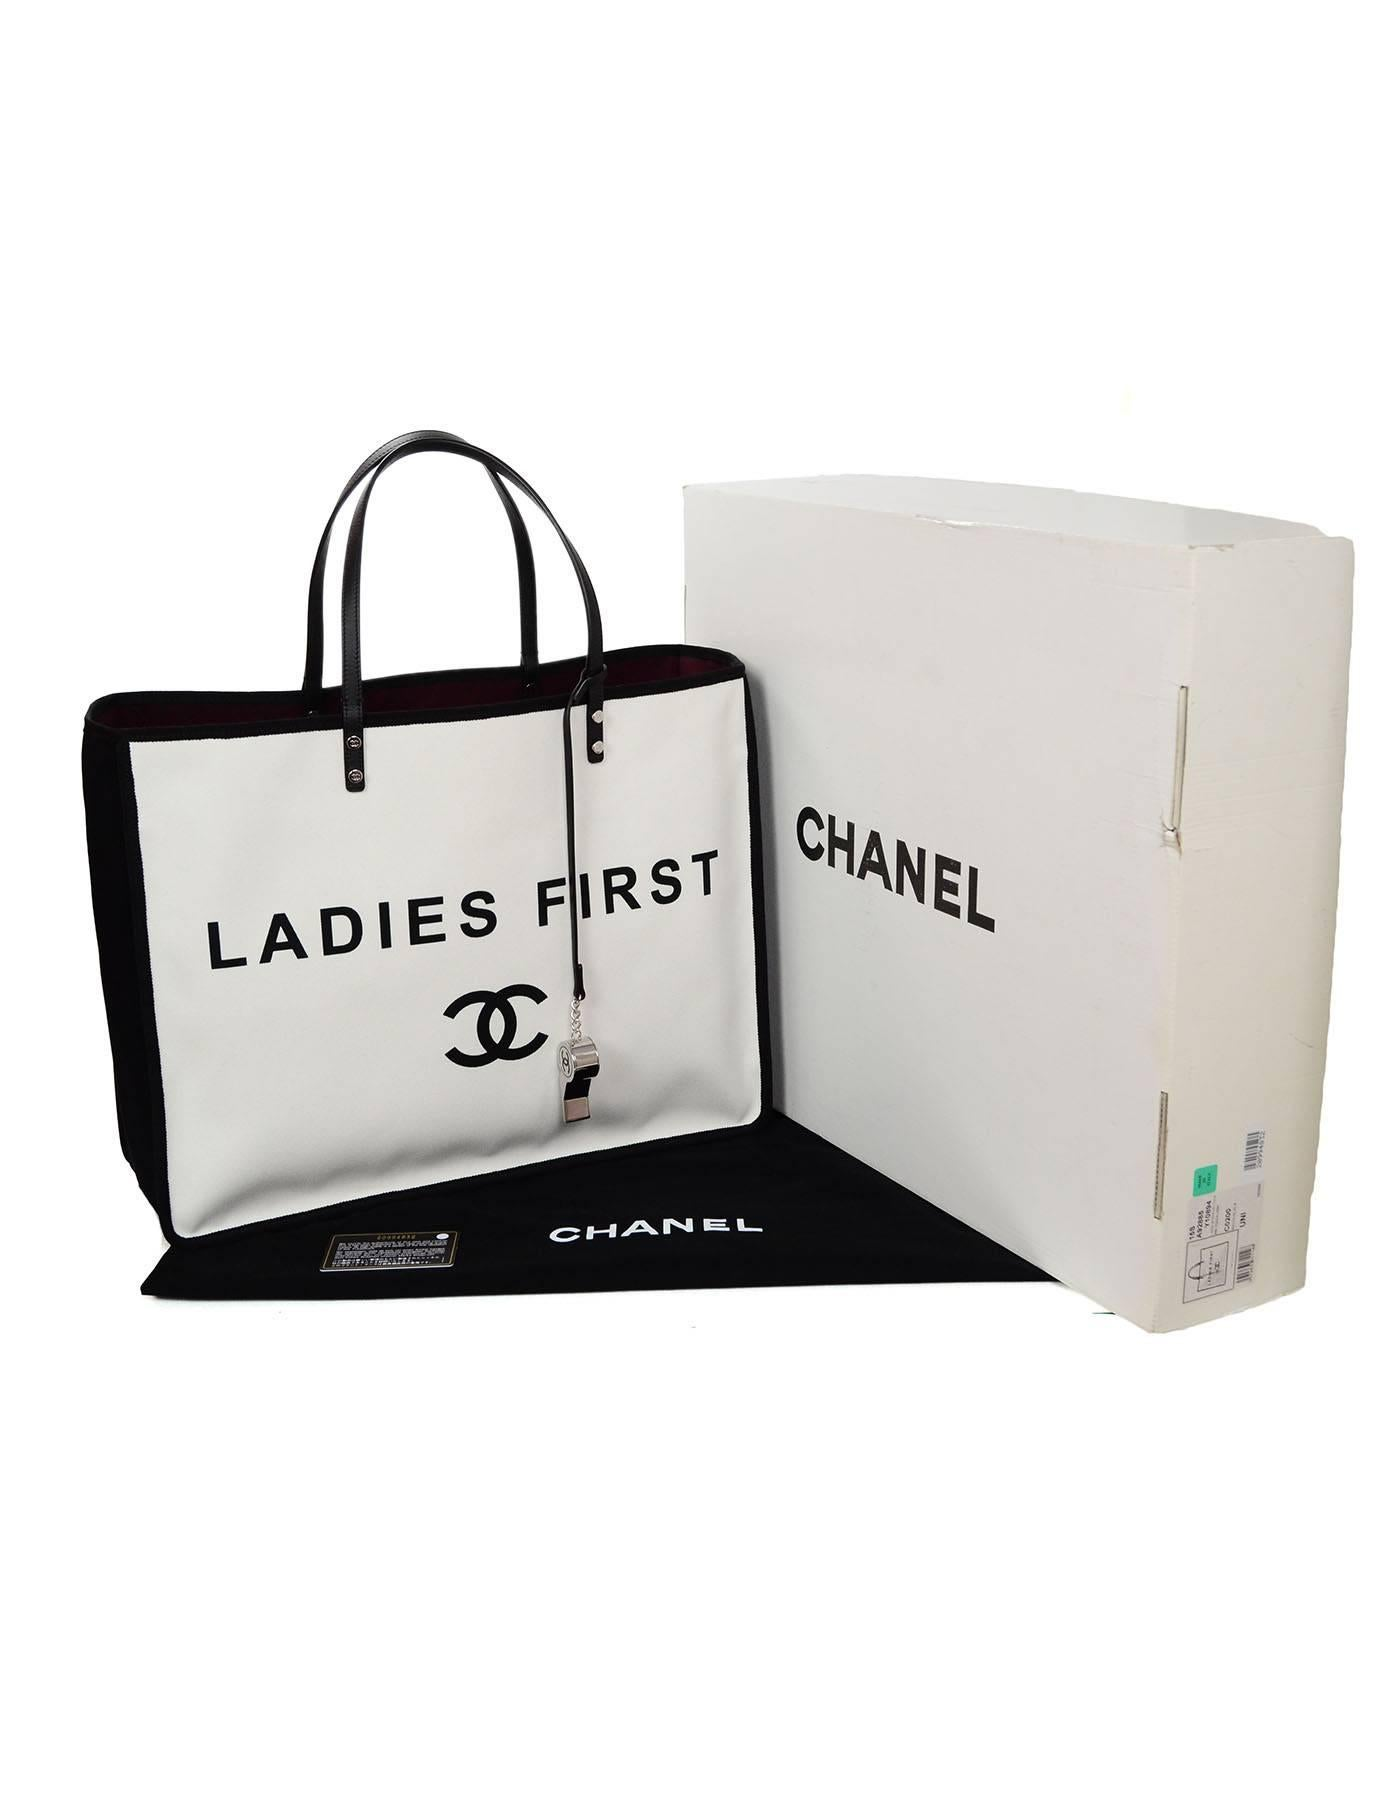 060e74a752f9 Chanel 2015 Like New Black and White Canvas Ladies First Tote Bag For Sale  at 1stdibs